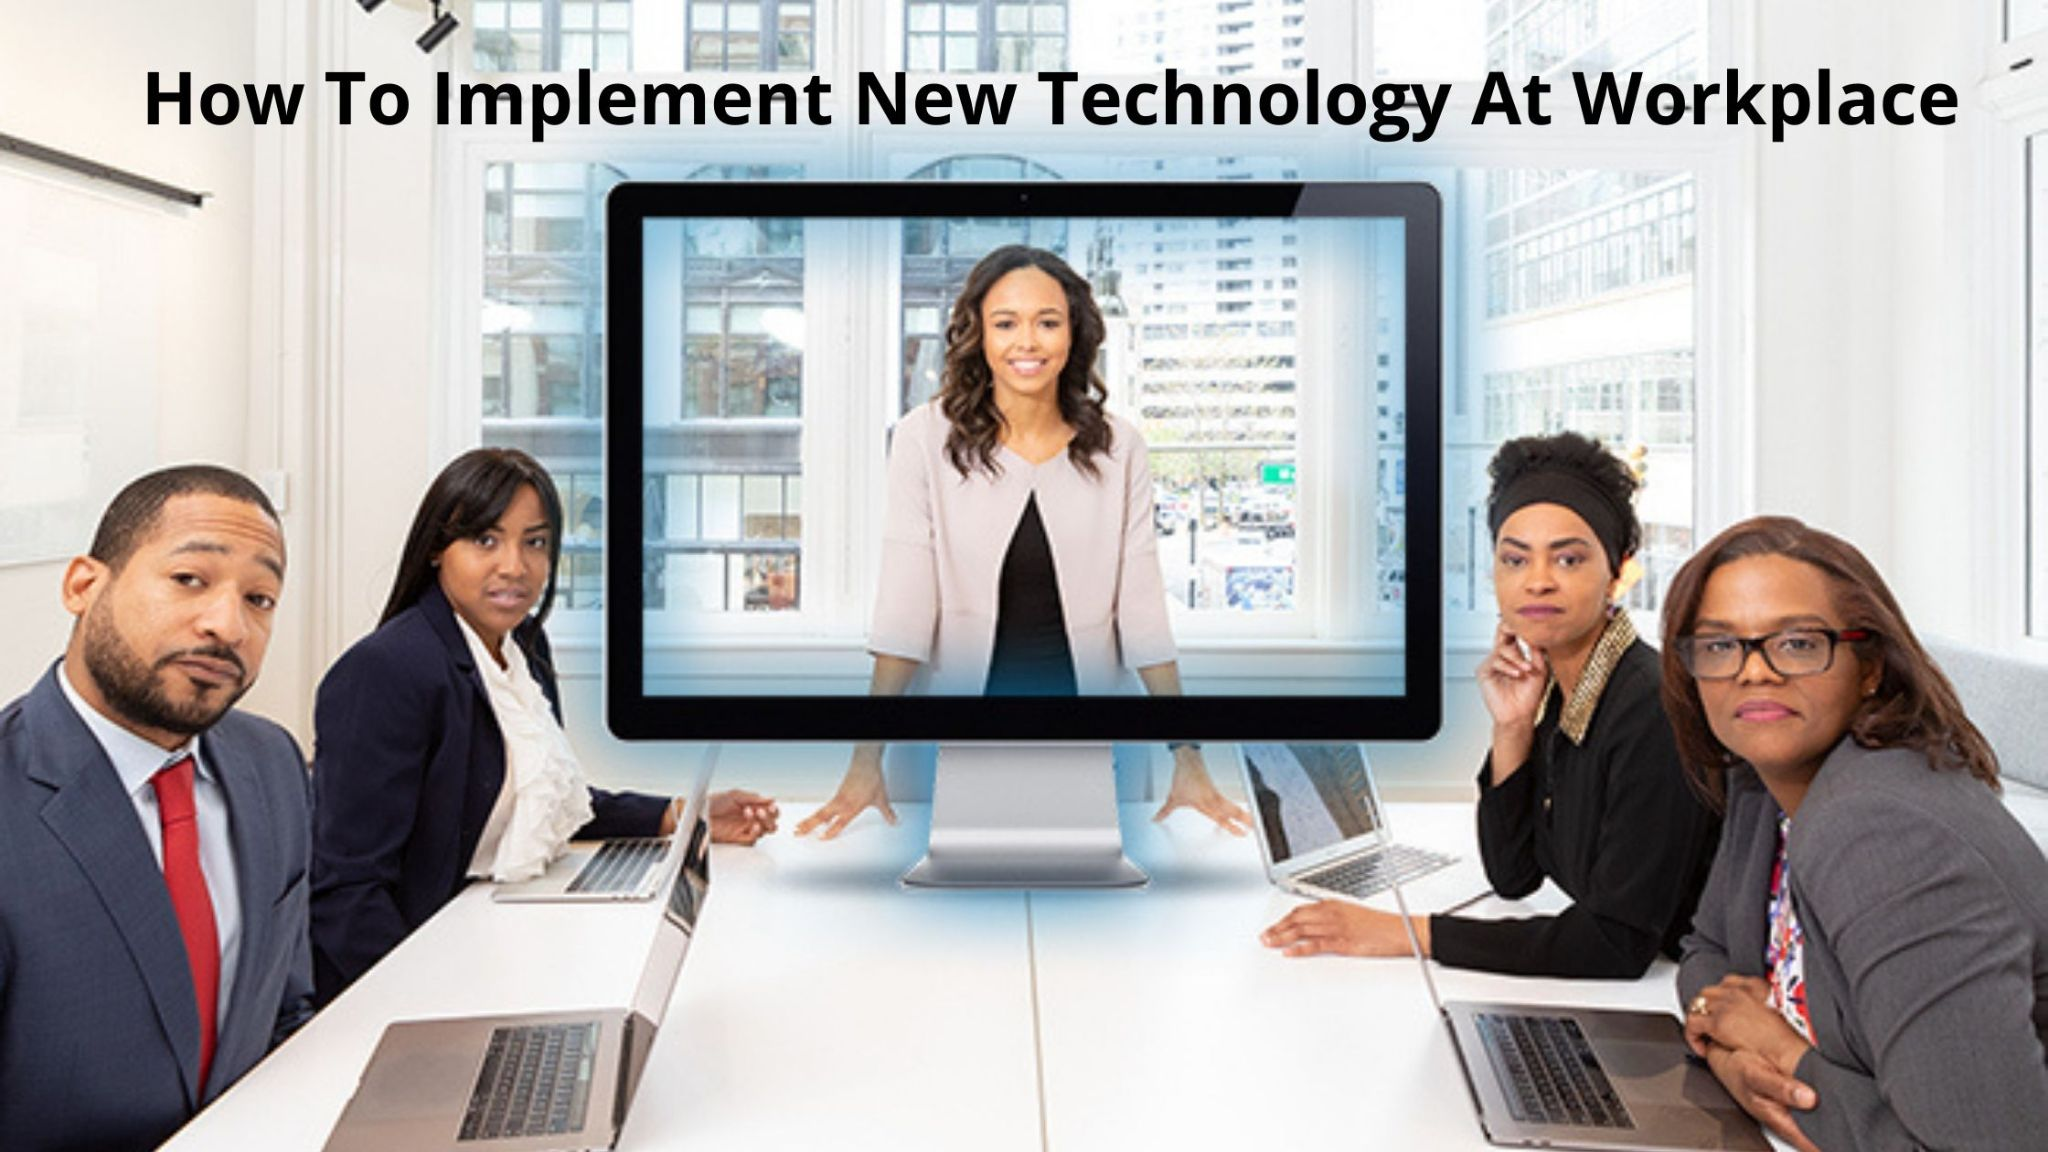 How To Implement New Technology At Workplace